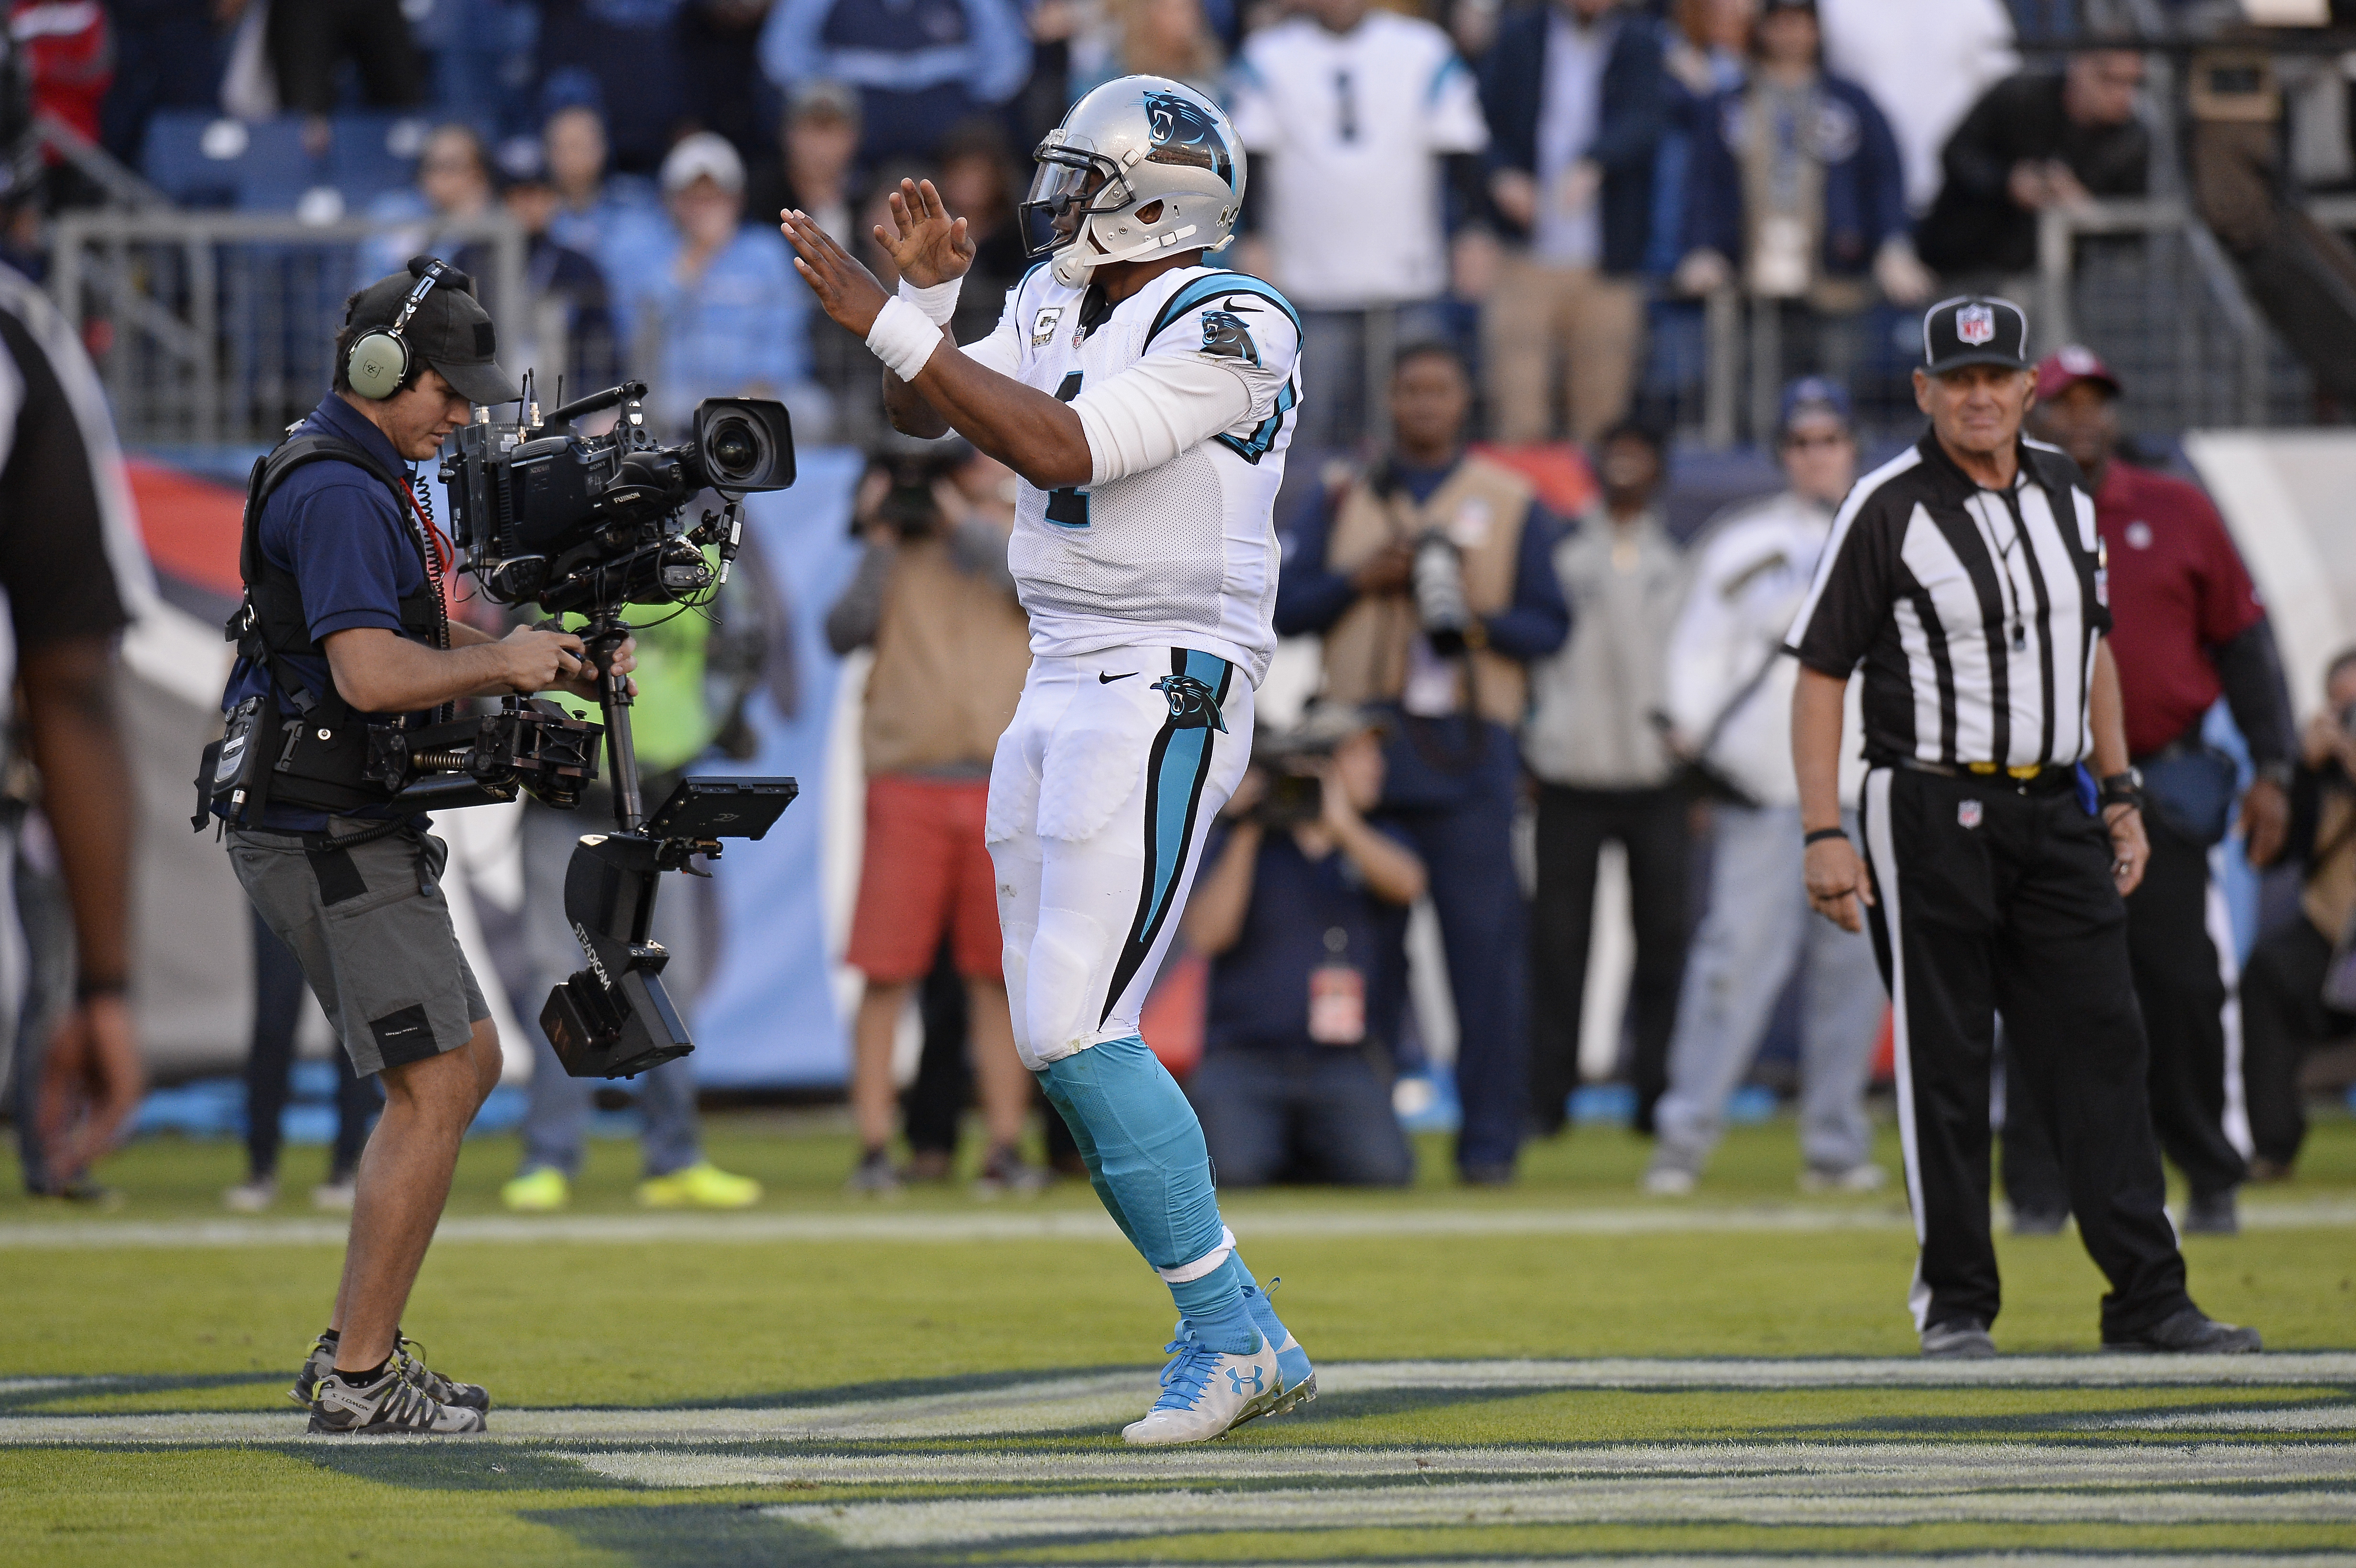 Carolina Panthers quarterback Cam Newton dances after scoring a touchdown against the Tennessee Titans (Photo: Associated Press)